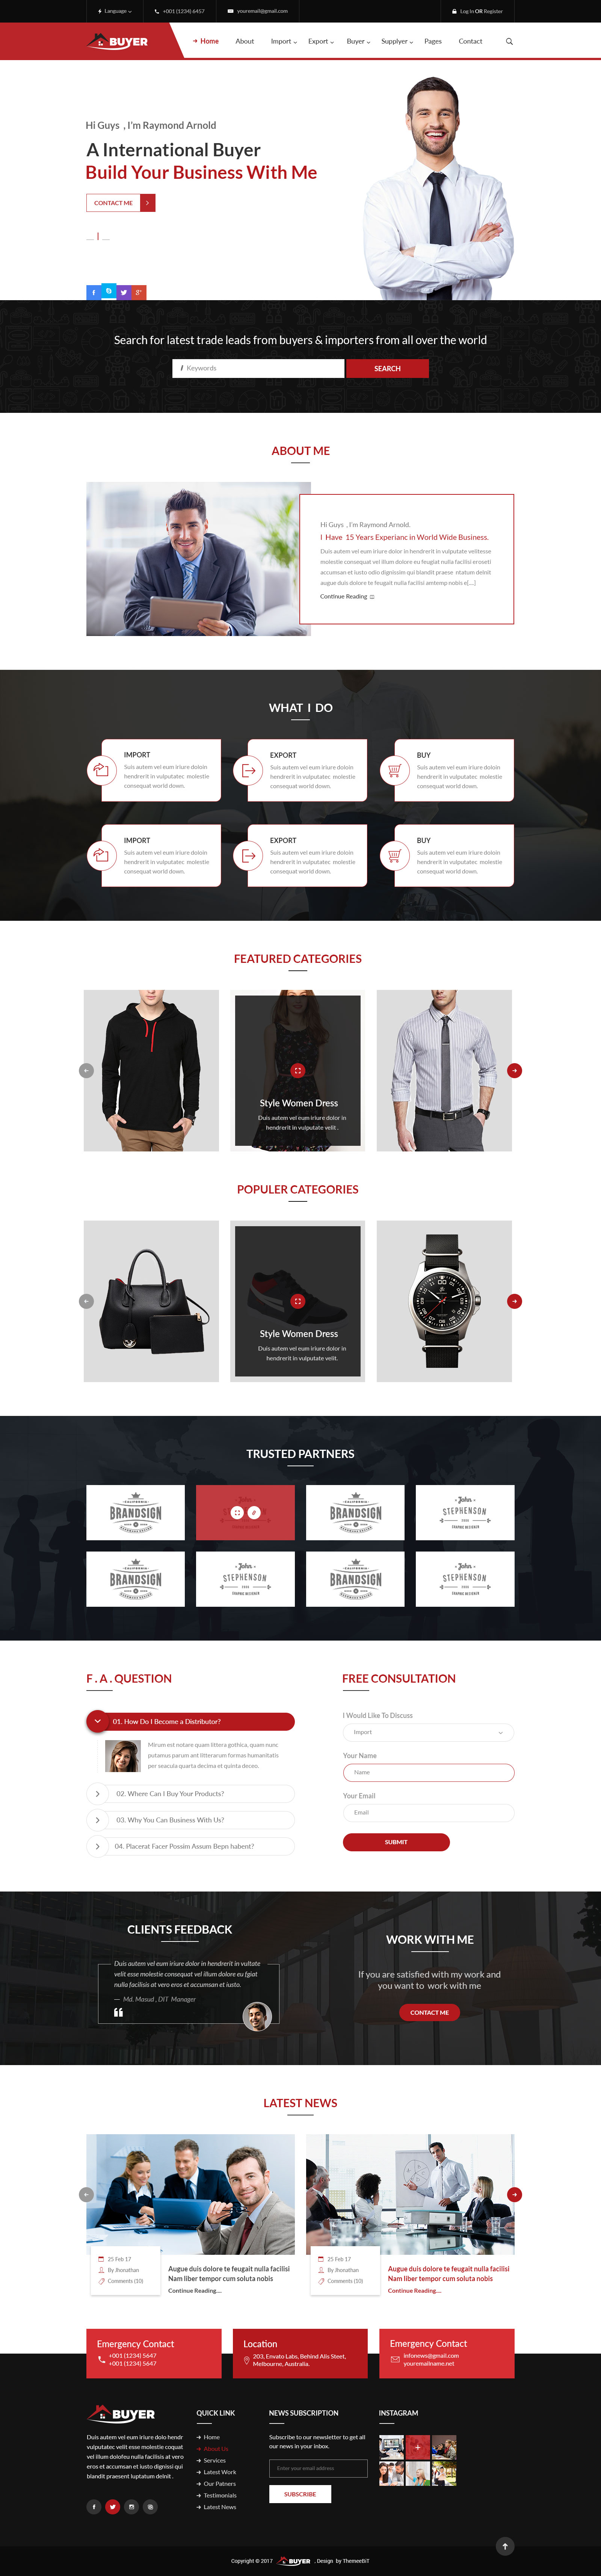 Buyer - Export/Import Business PSD Template